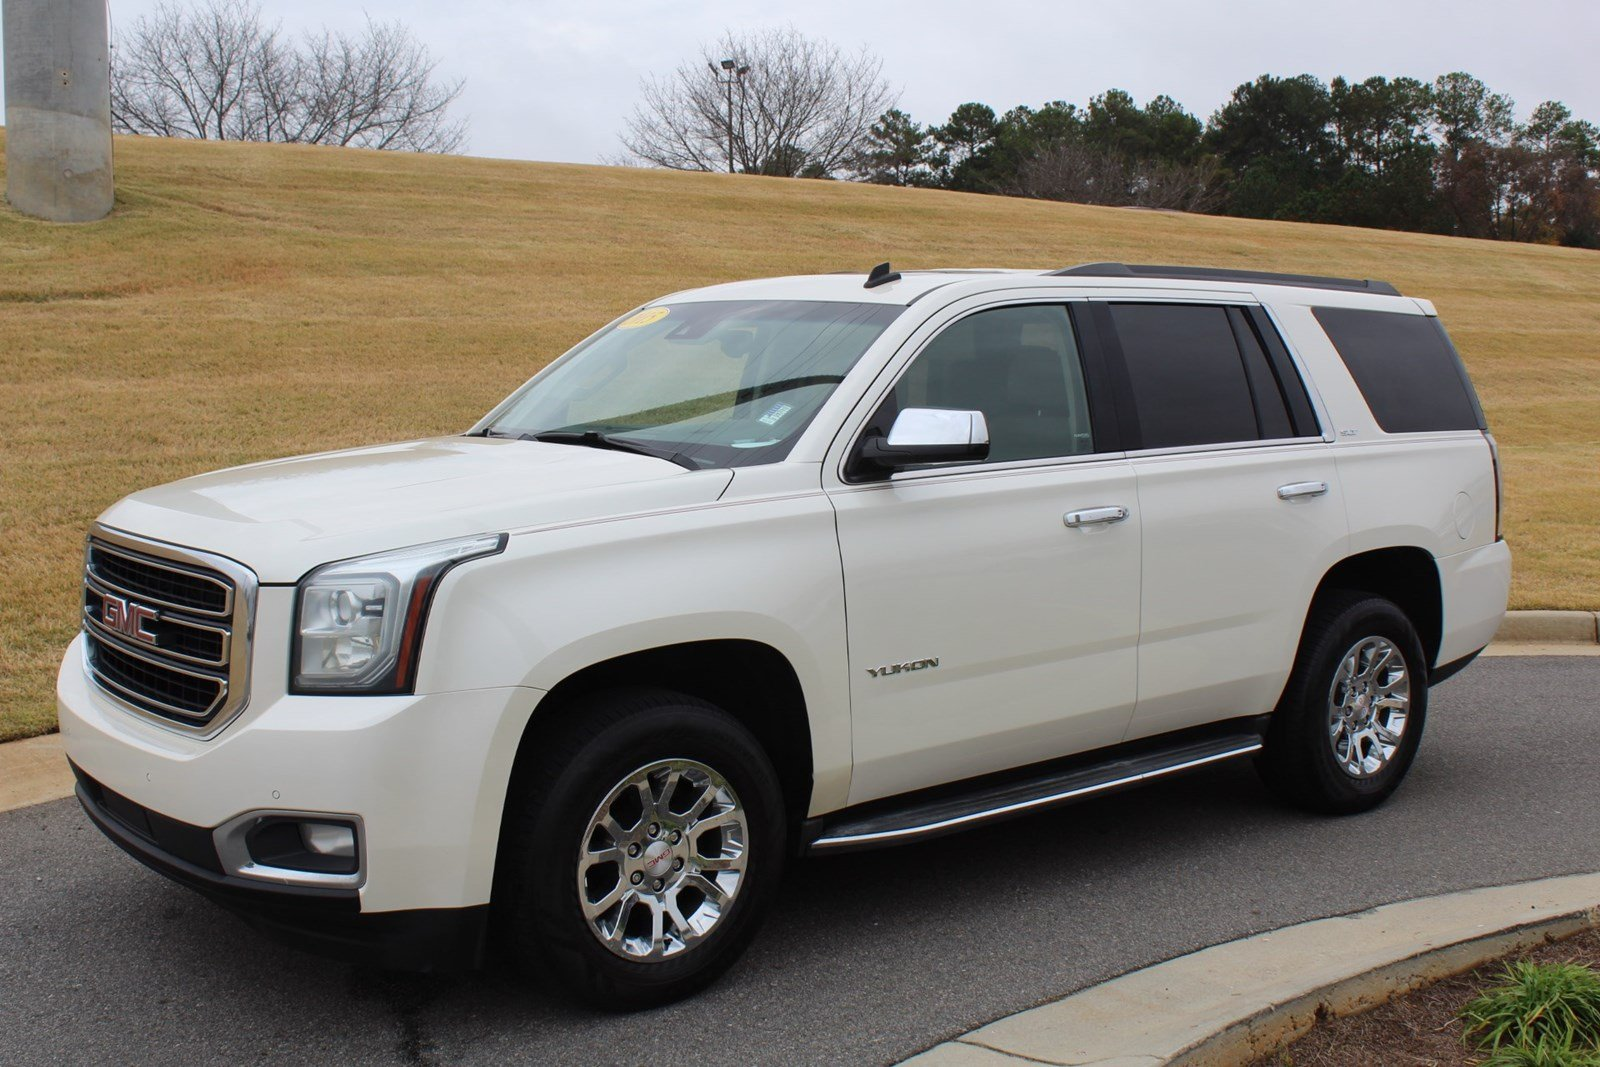 2015 Gmc Yukon Slt >> Pre Owned 2015 Gmc Yukon Slt With Navigation 4wd